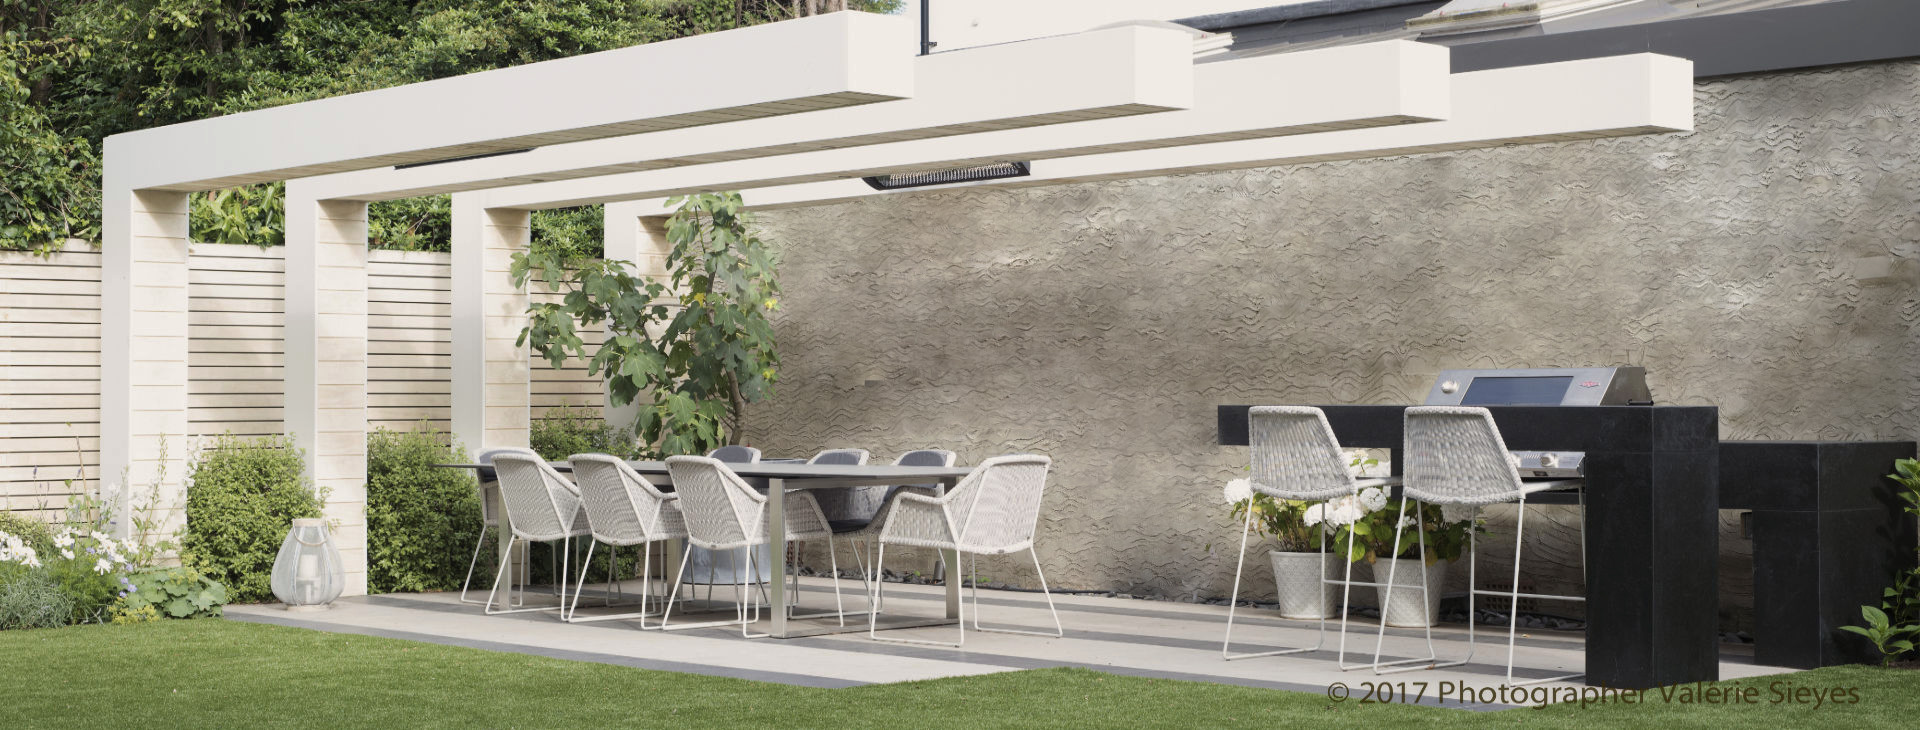 We provide garden design services for private and commercial clients